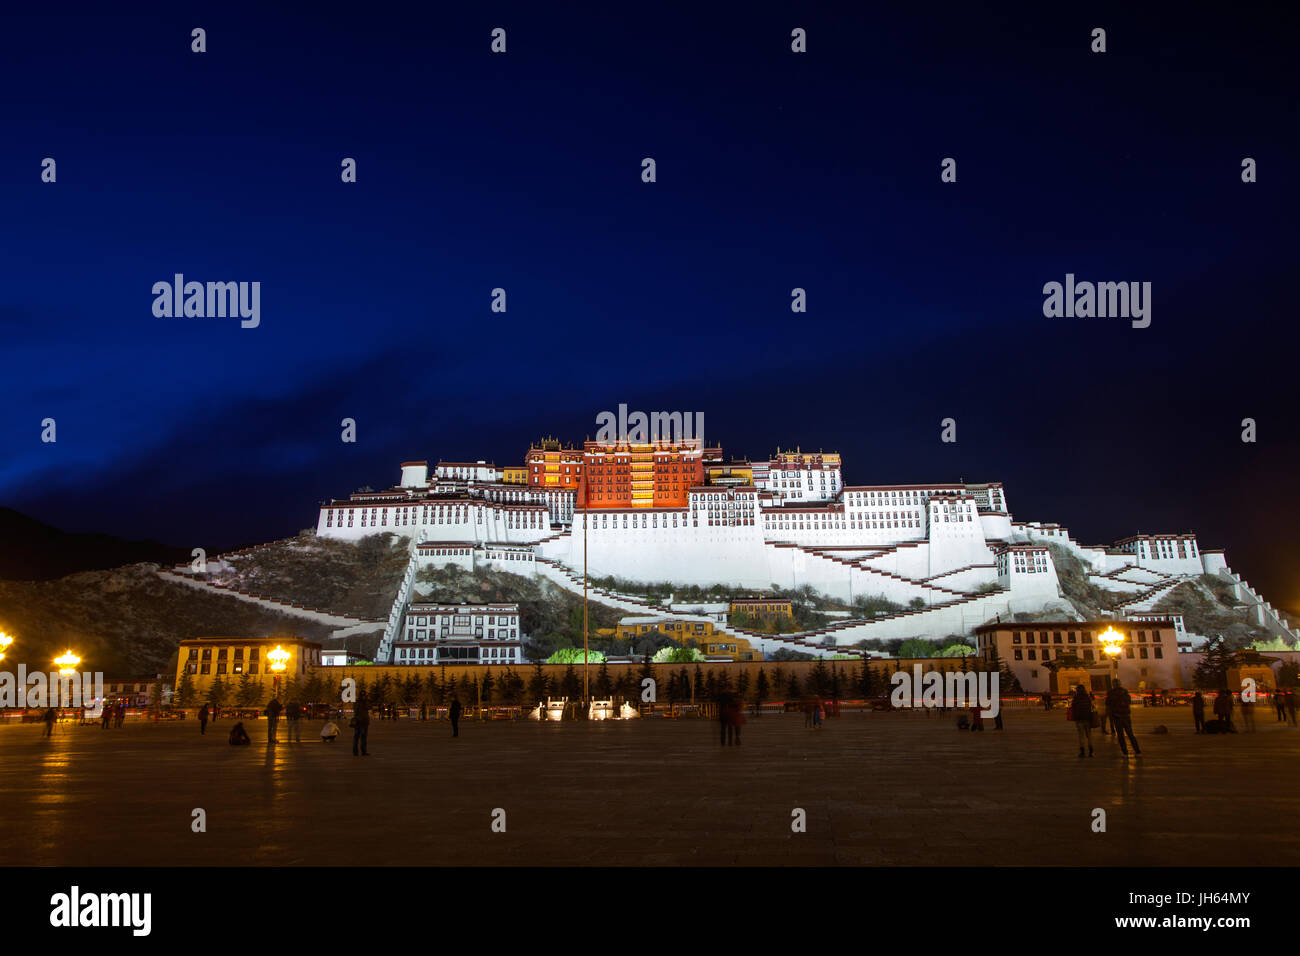 the Potala Palace,Lhasa,Tibet,China - Stock Image